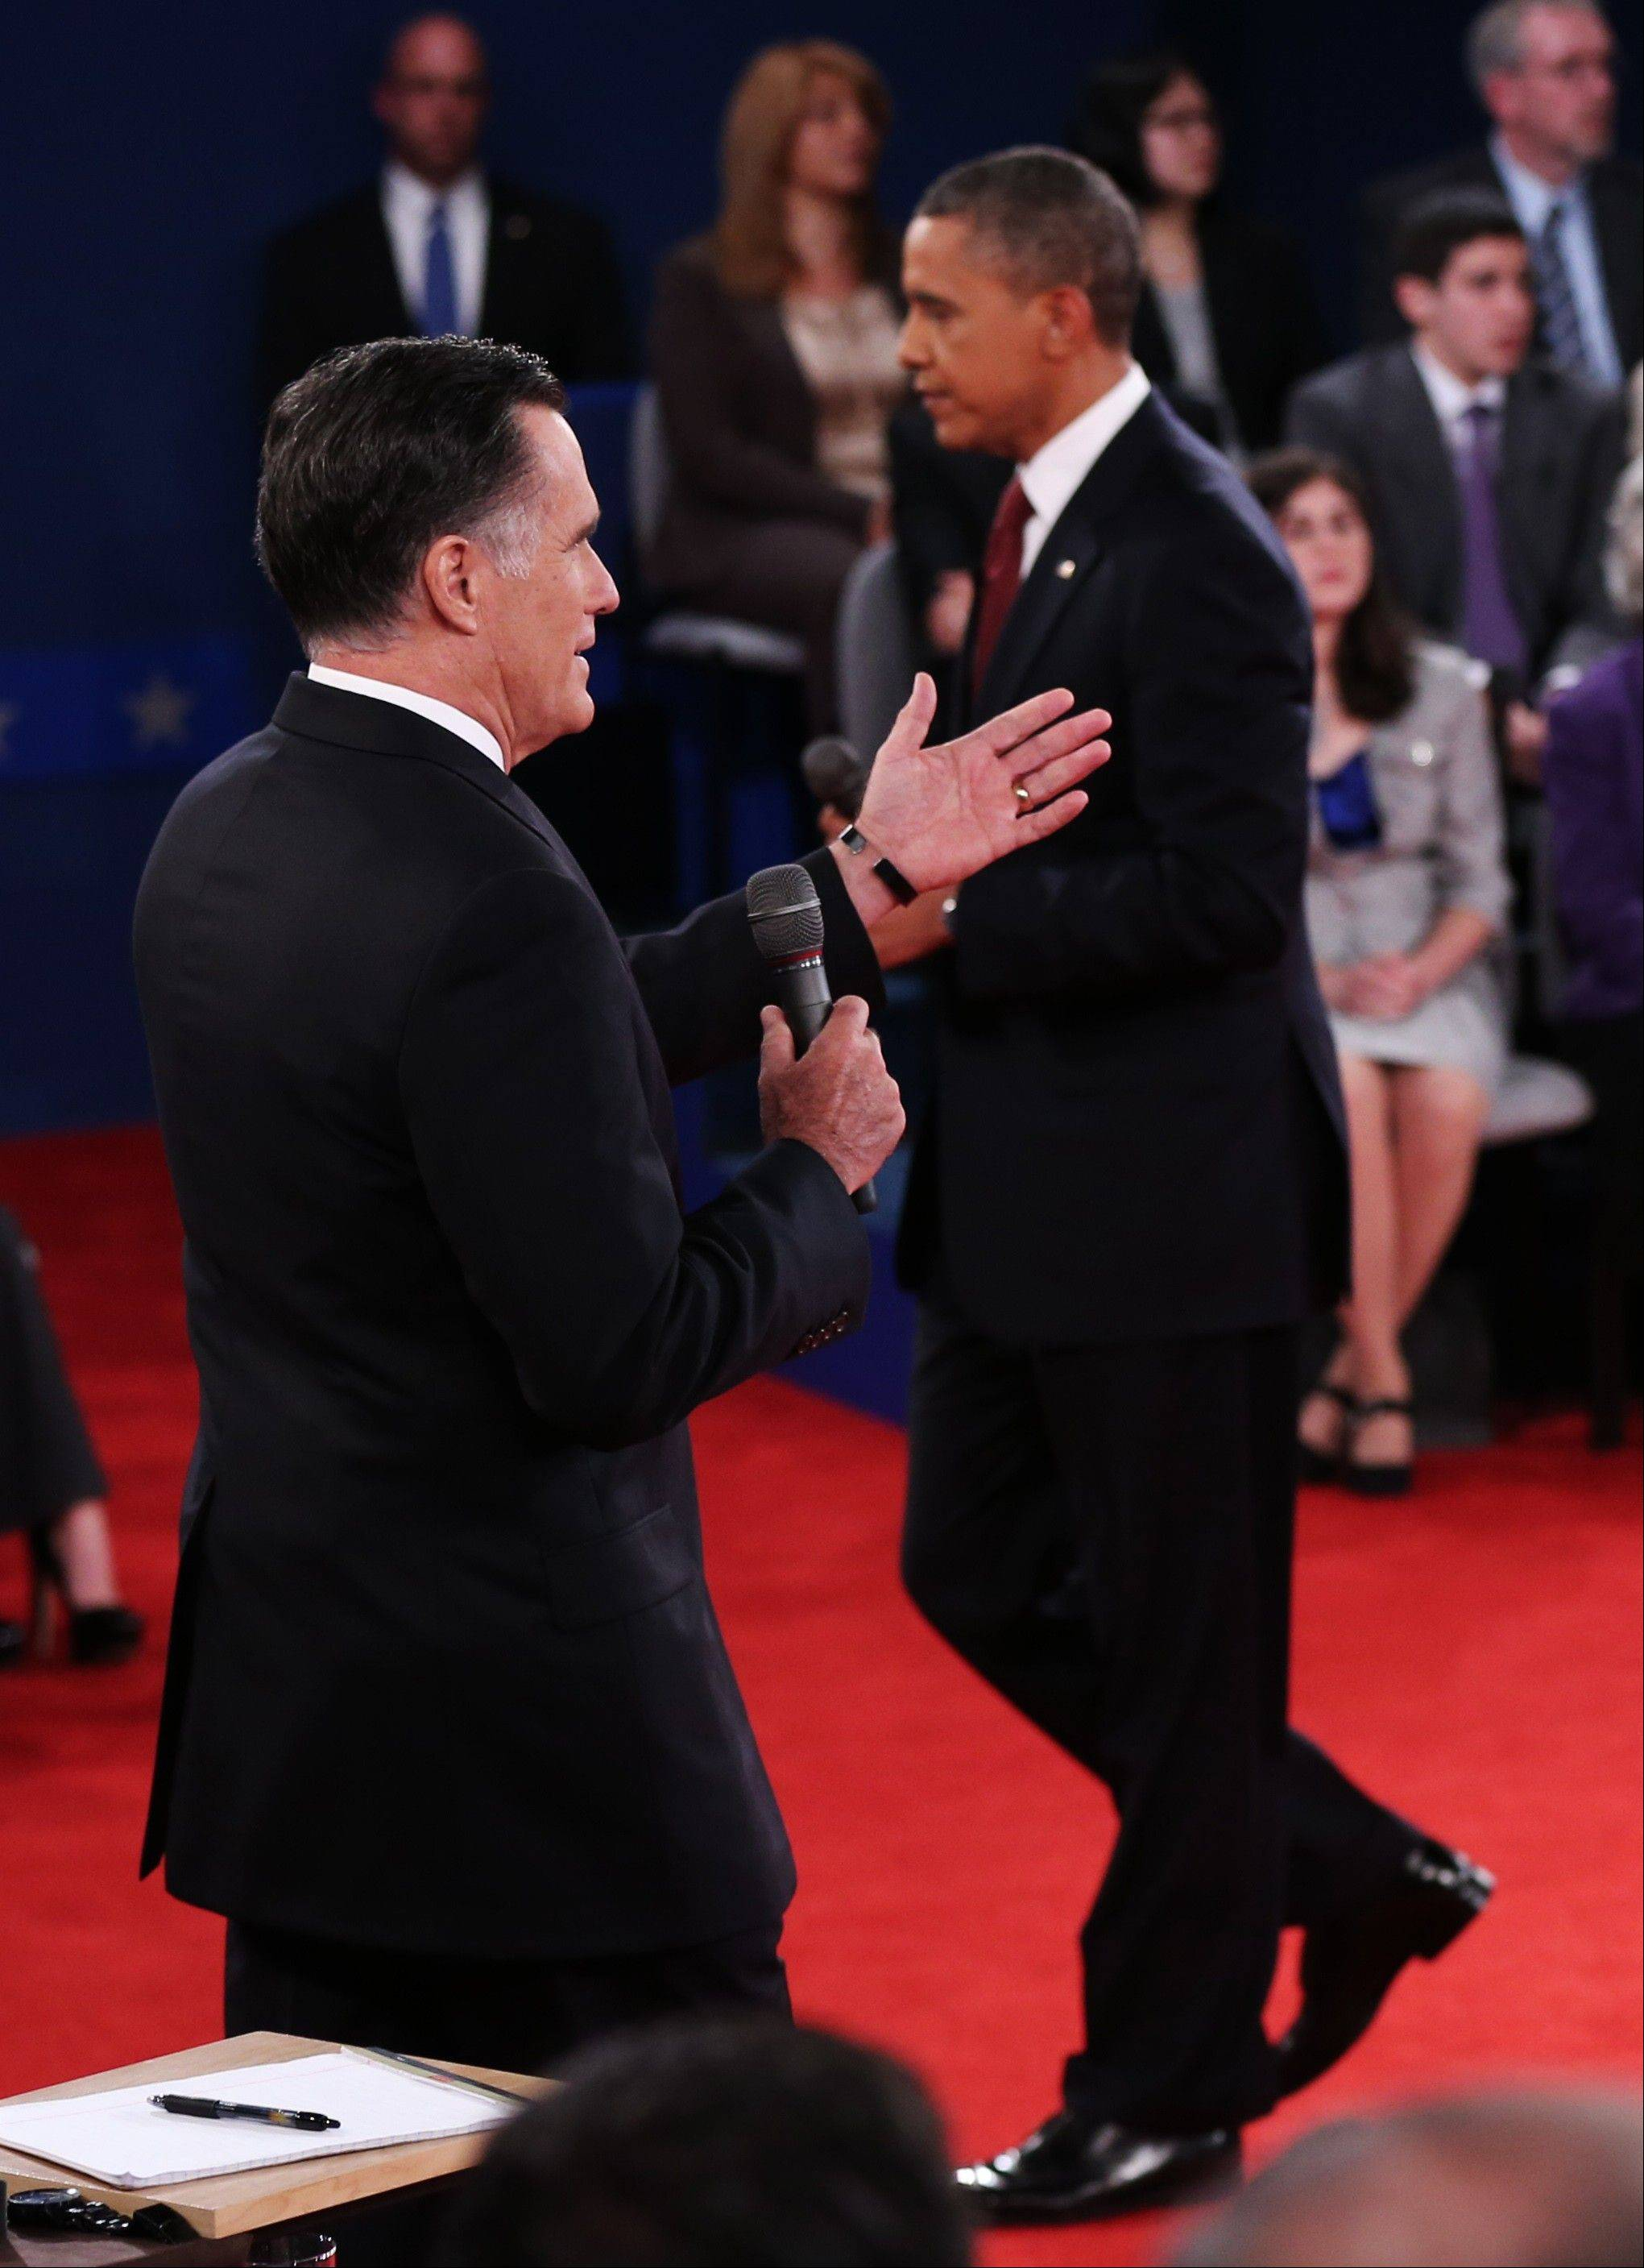 President Barack Obama, right, walks past as Republican presidential nominee Mitt Romney members of the audience during the second presidential debate at Hofstra University, Tuesday, Oct. 16, 2012, in Hempstead, N.Y.